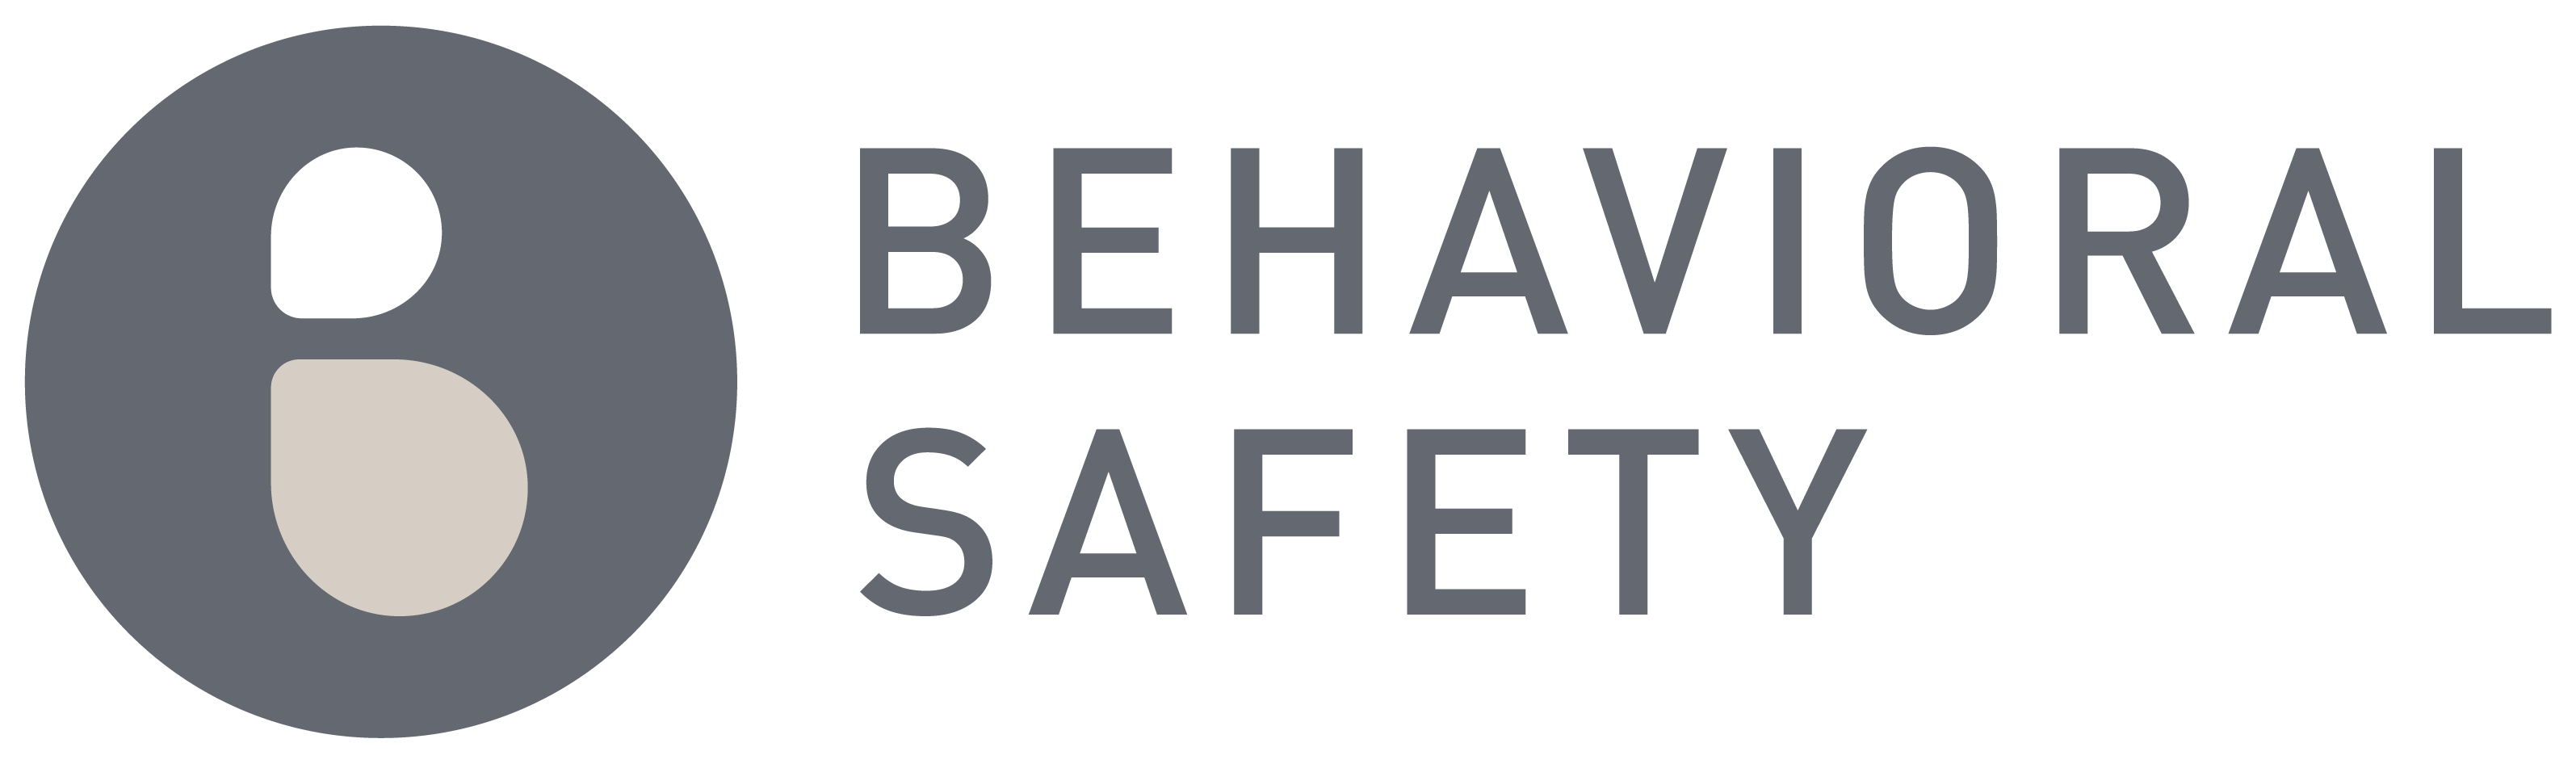 Behavioral Safety Products | Ligature Resistant